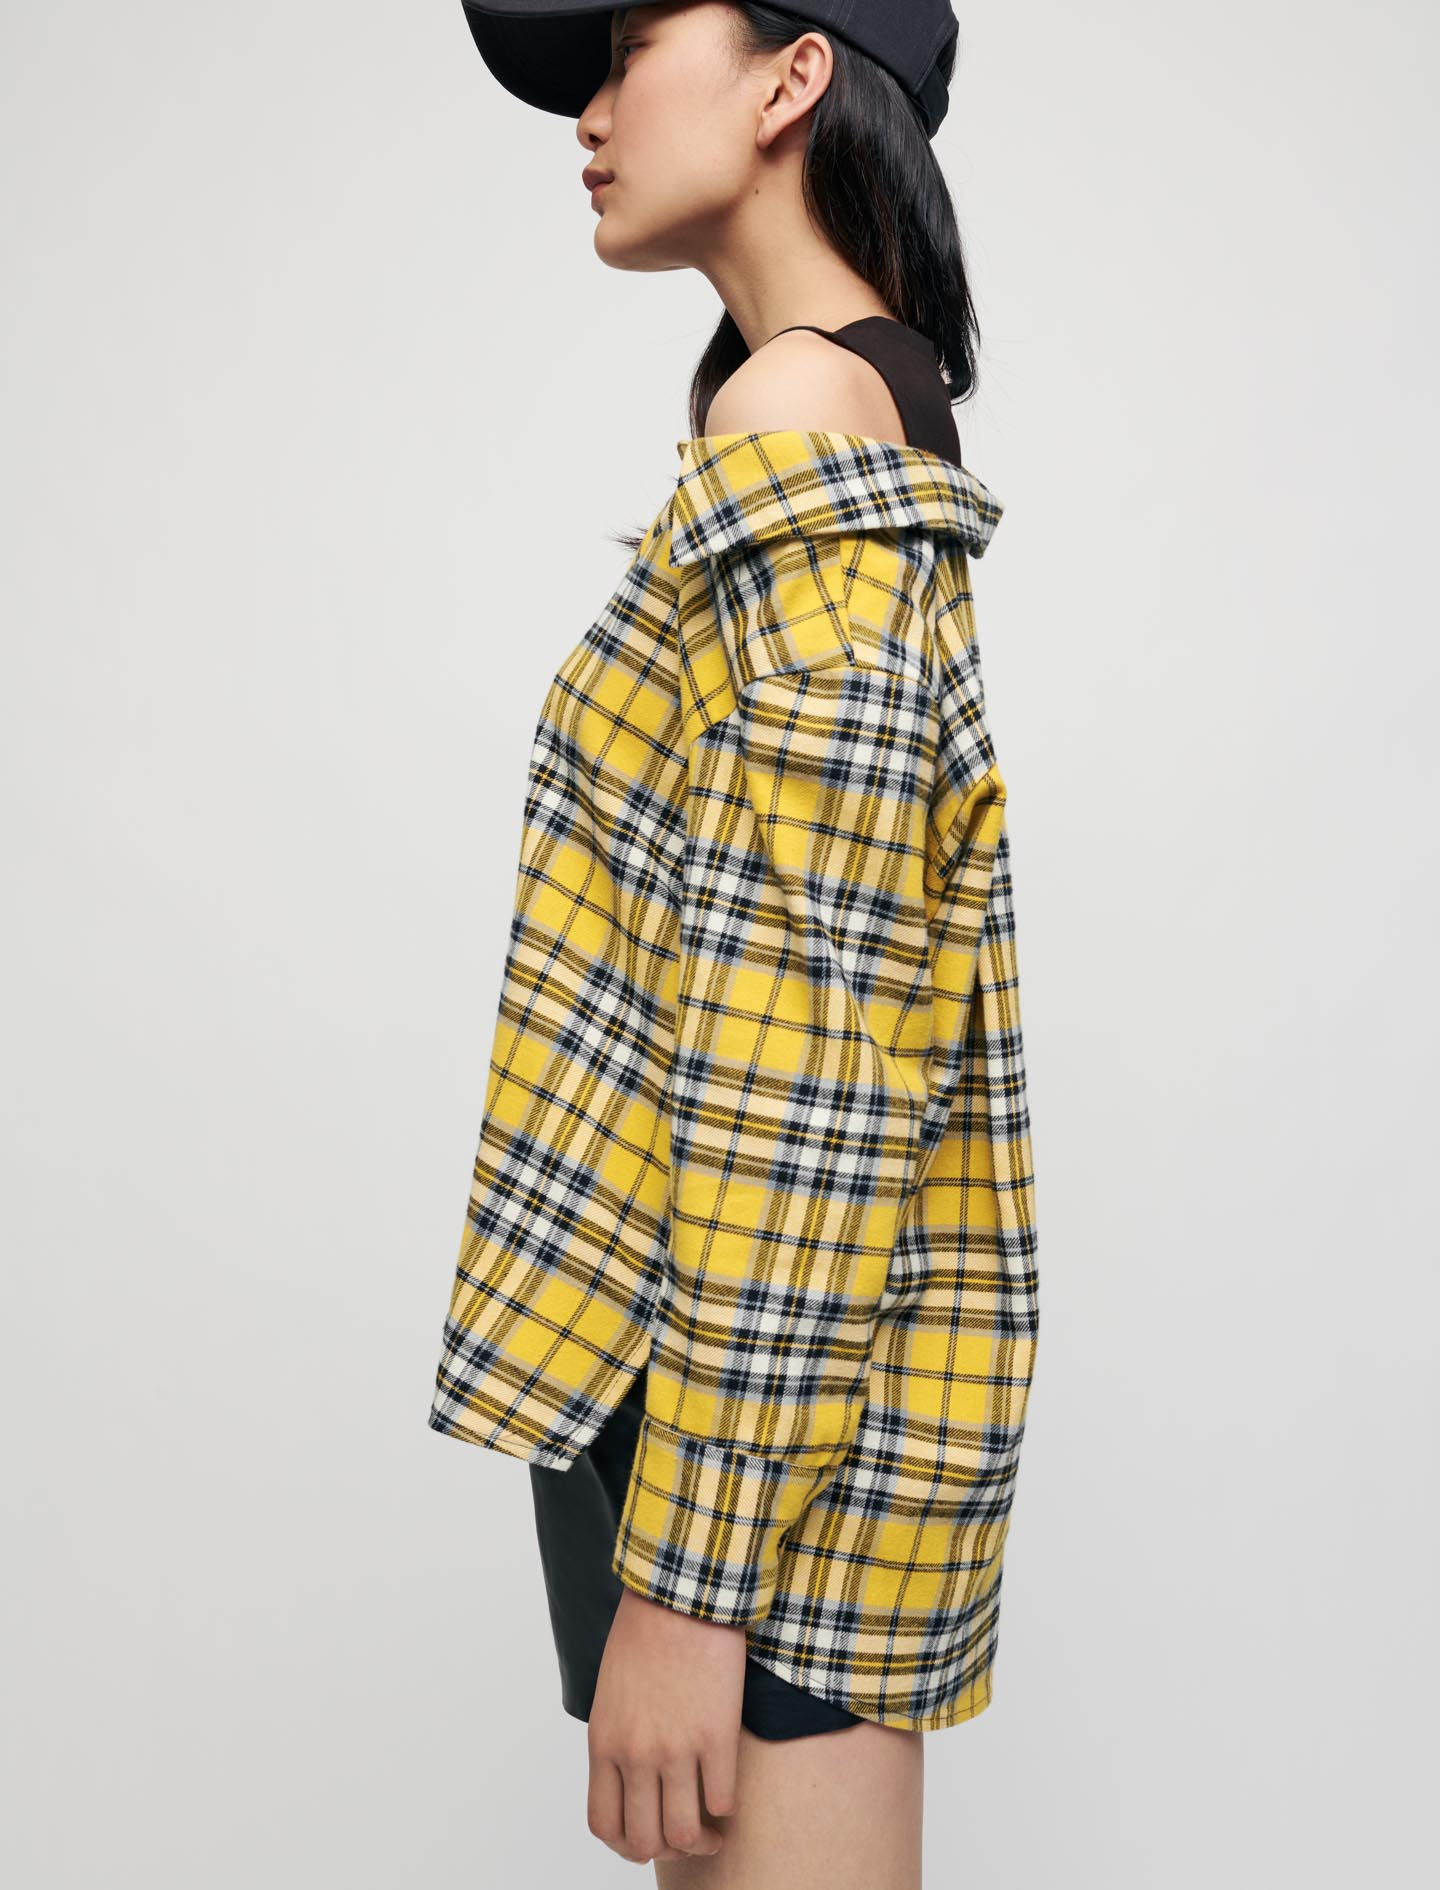 Trompe l oeil checked shirt and T shirt - Yellow